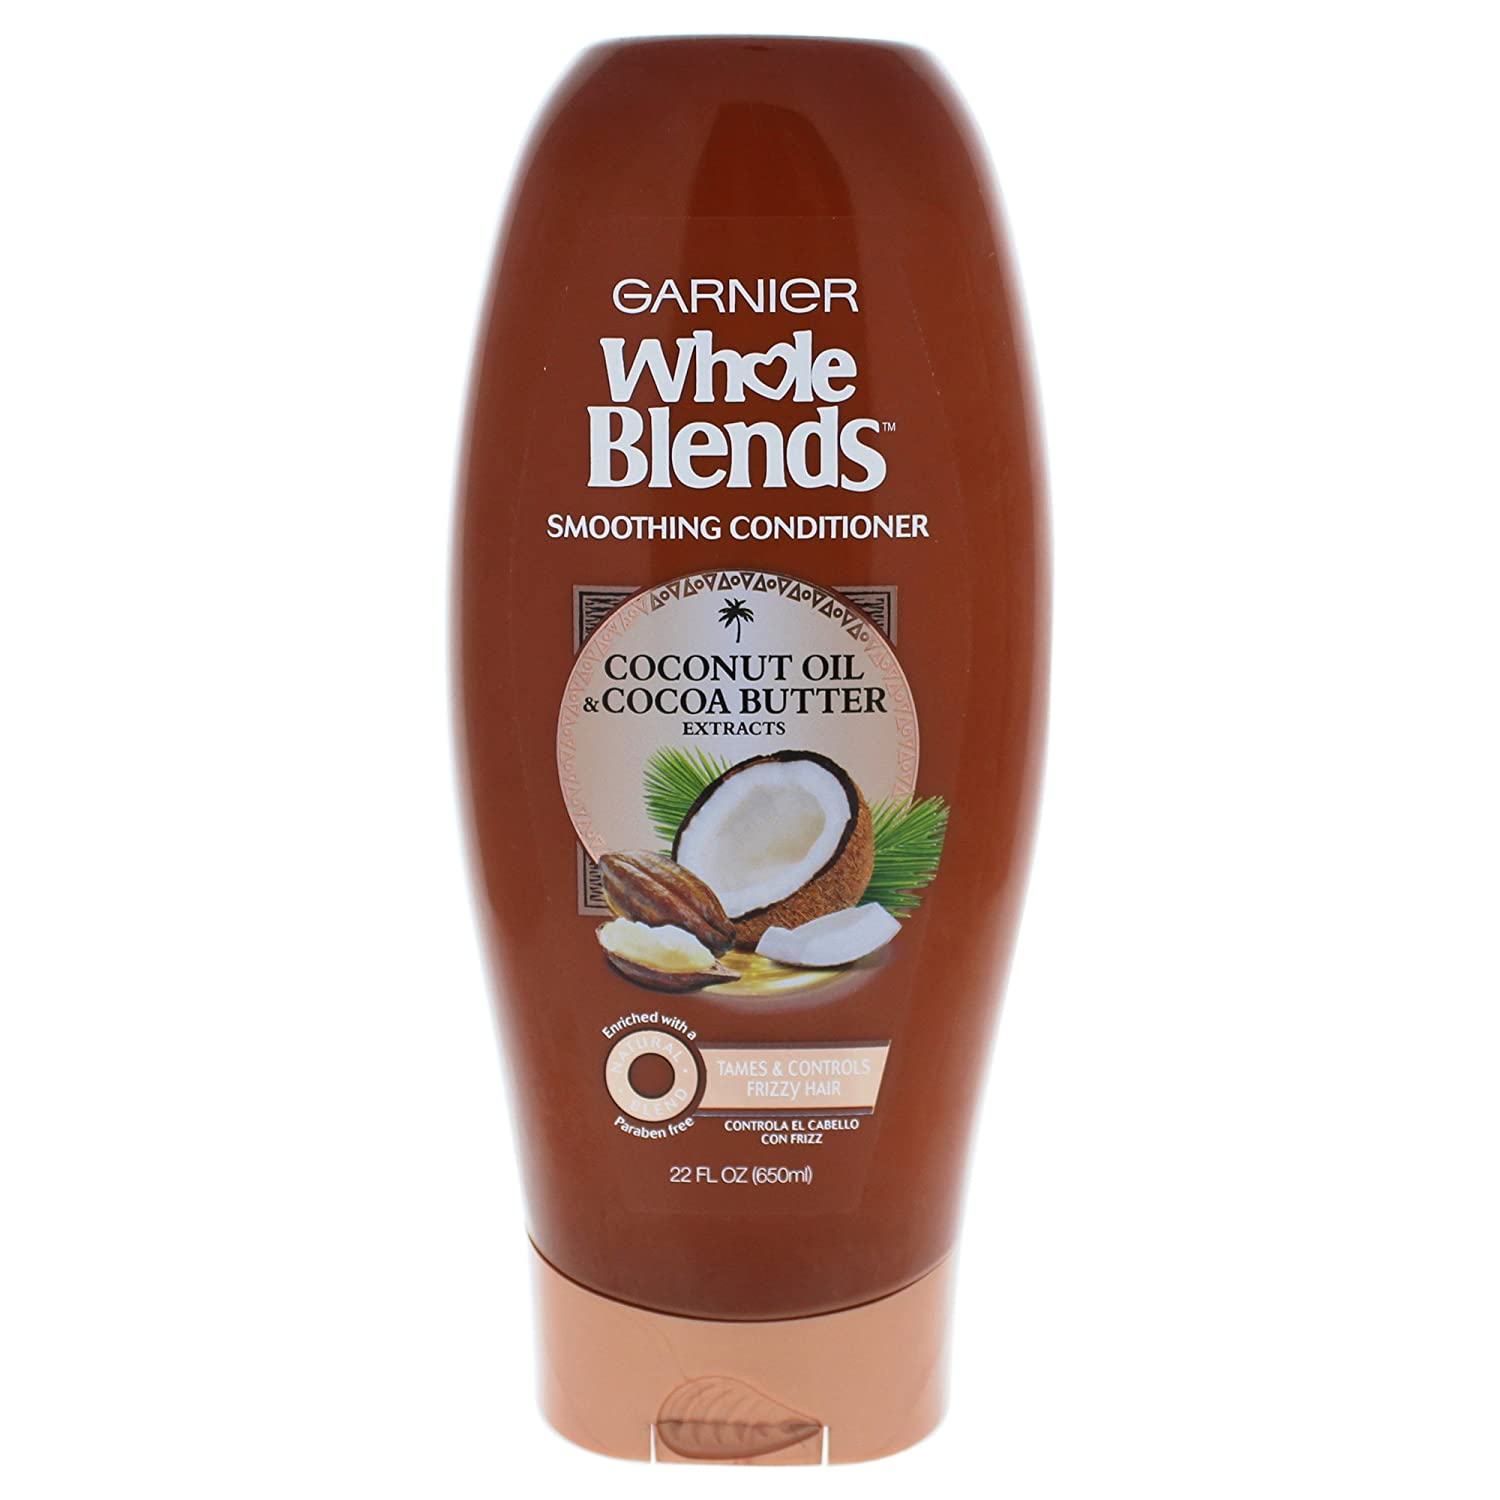 Garnier Whole Blends Coconut Oil and Cocoa Butter Smoothing Conditioner. Fix Frizzes and Fly-Aways, Paraben-Free, 650 ml